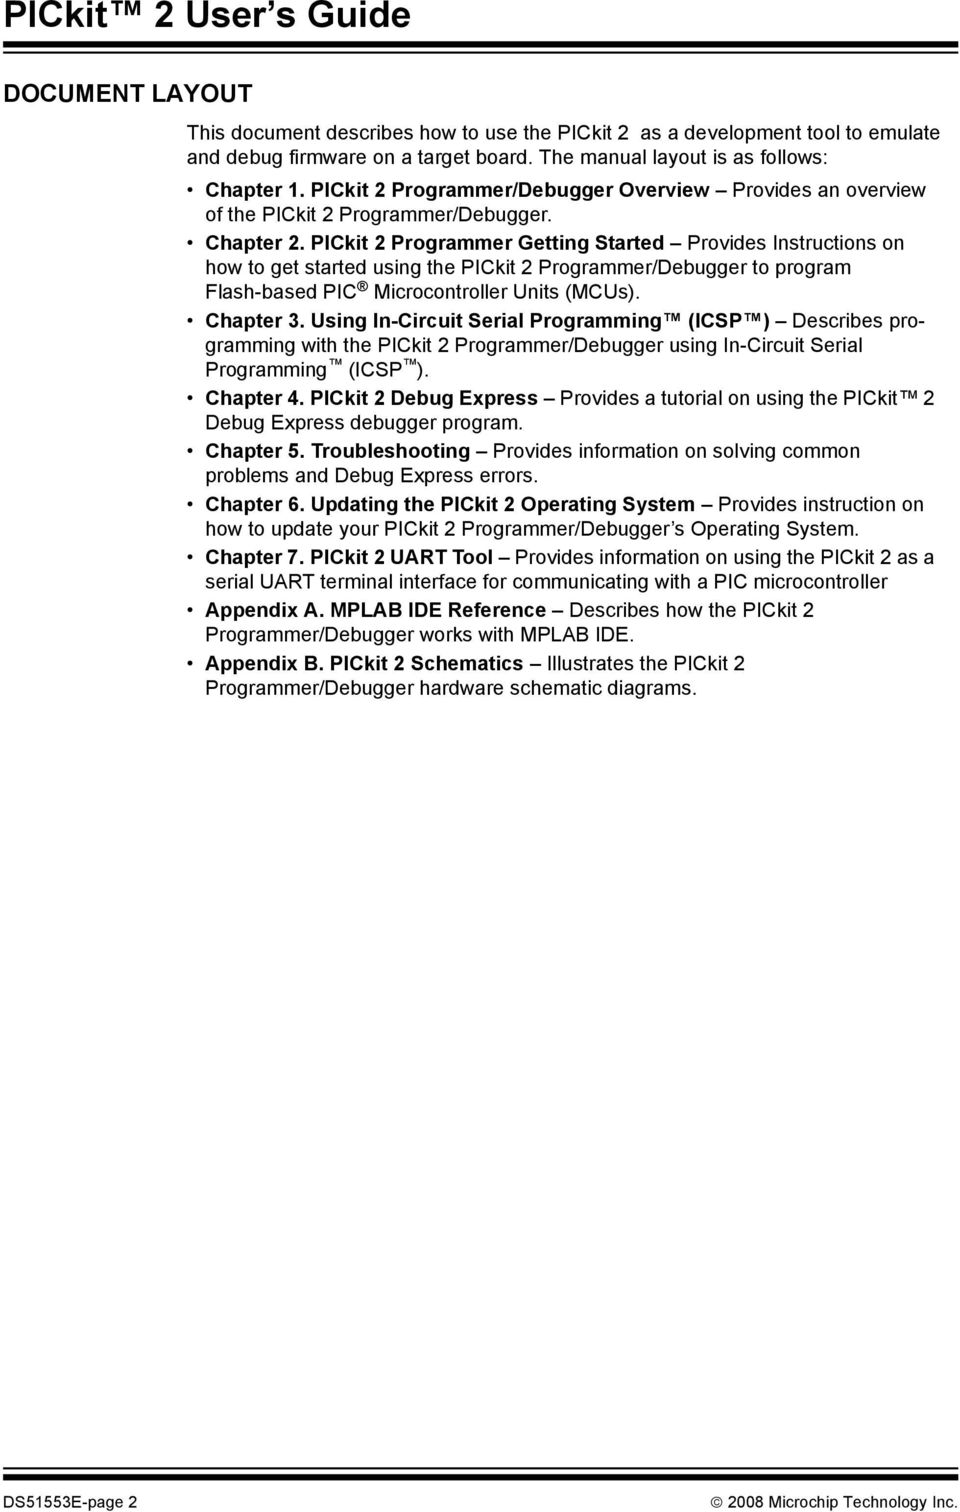 Pickit 2 Programmer Debugger User S Guide Pdf Circuits Icsp In Circuit Serial Programming Board Based On Pic16f84 Getting Started Provides Instructions How To Get Using The